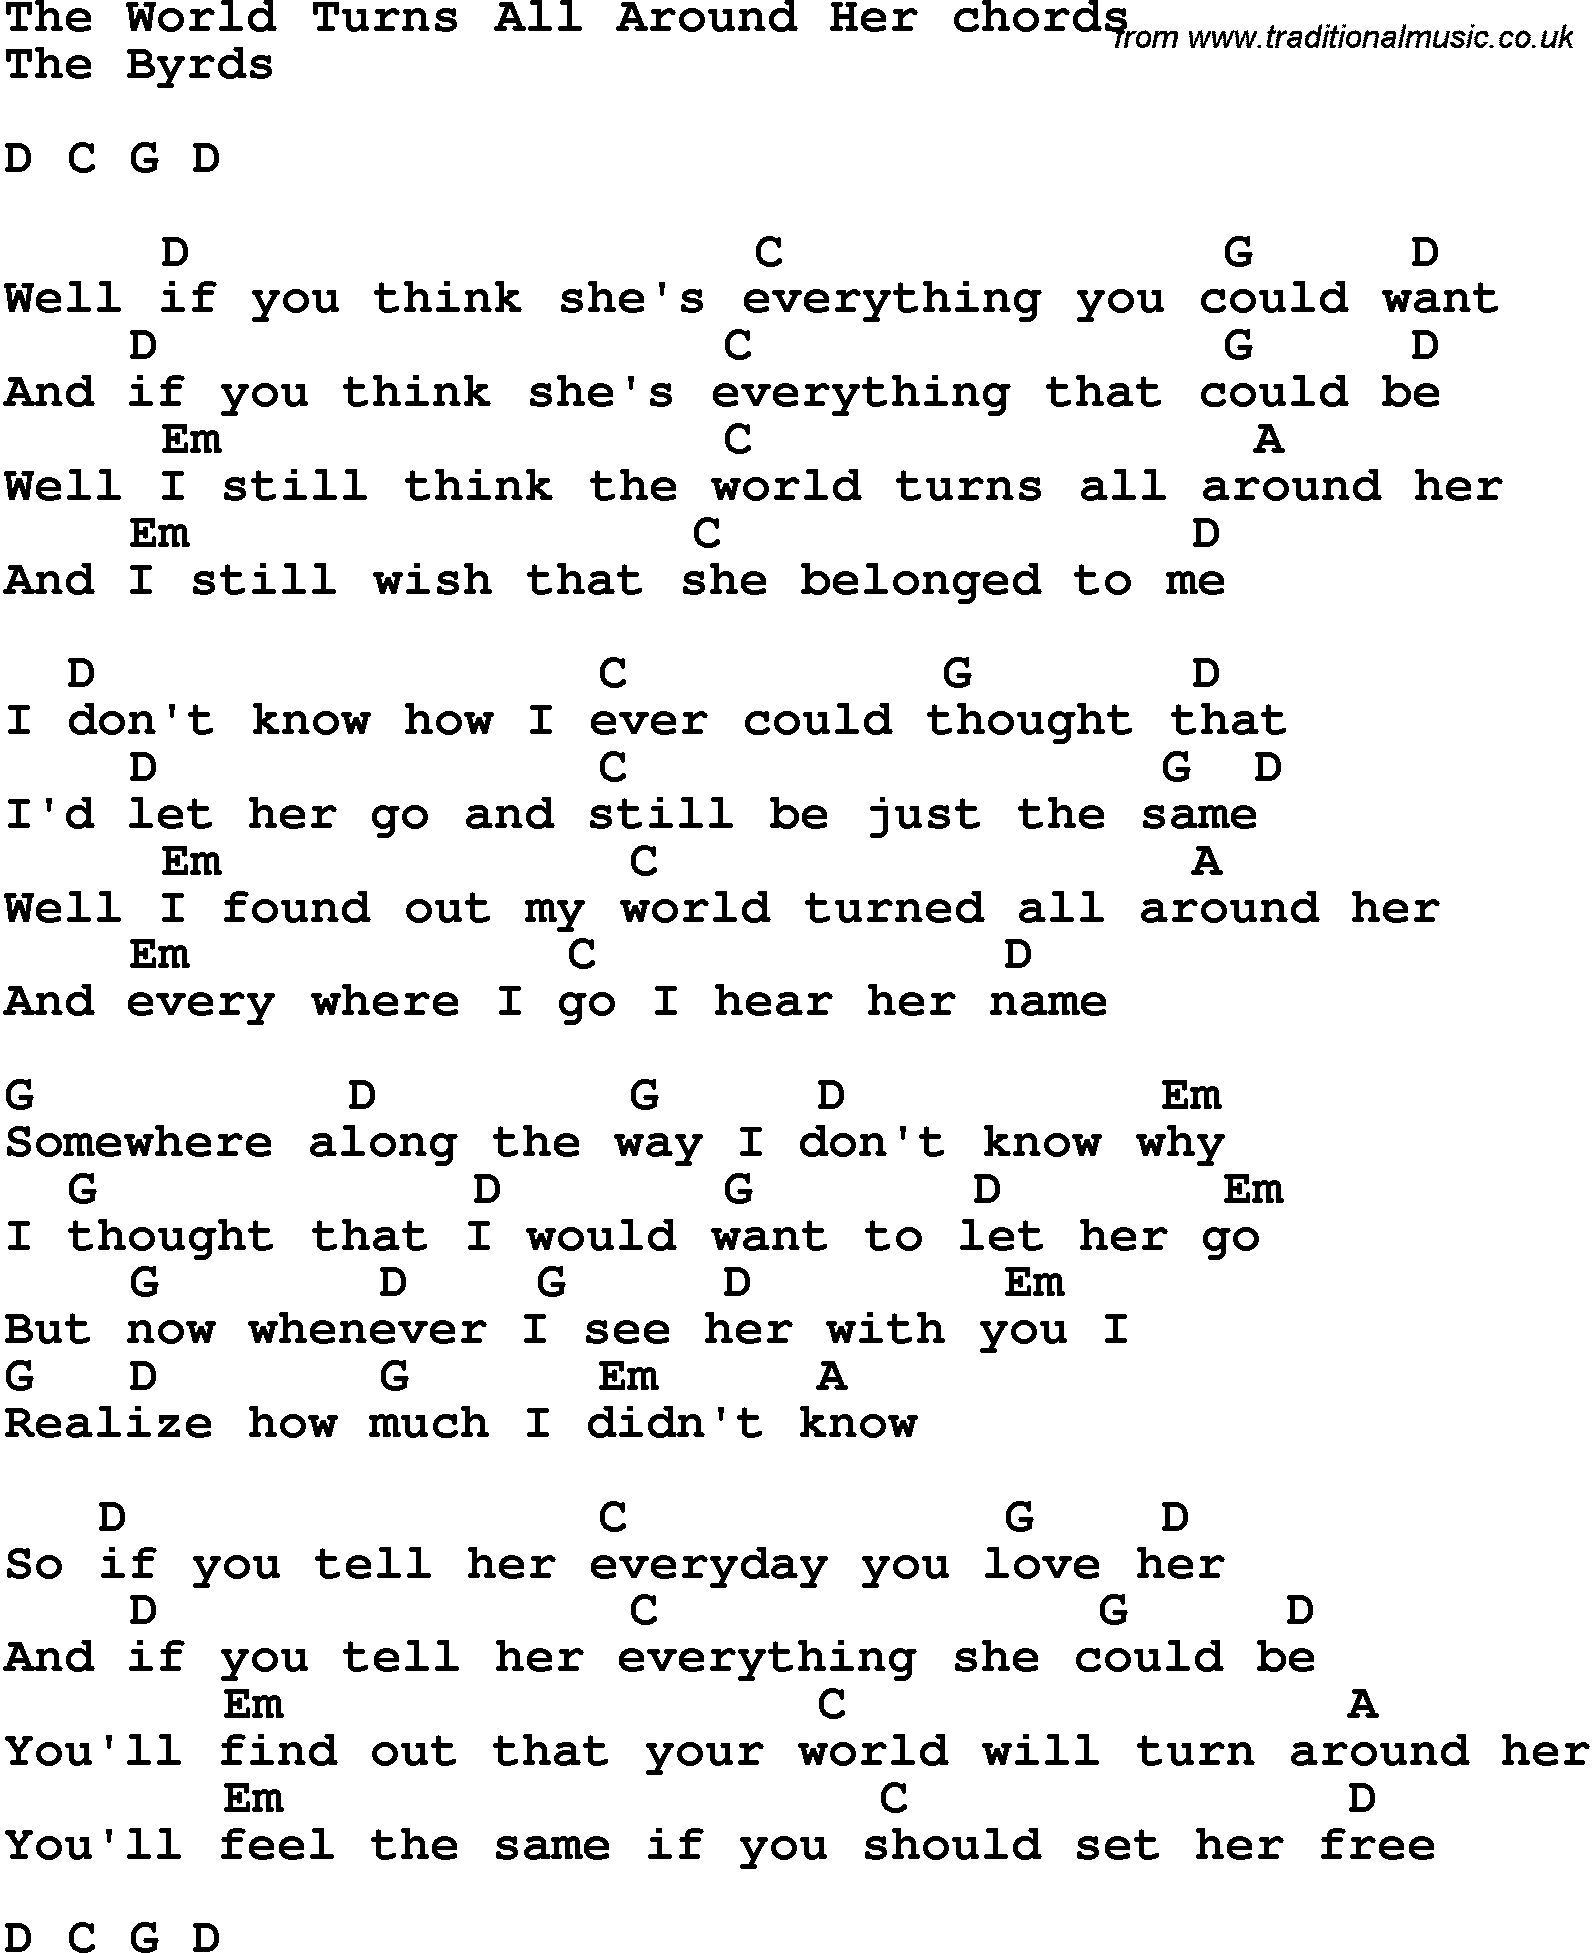 Song Lyrics With Guitar Chords For The World Turns All Around Her